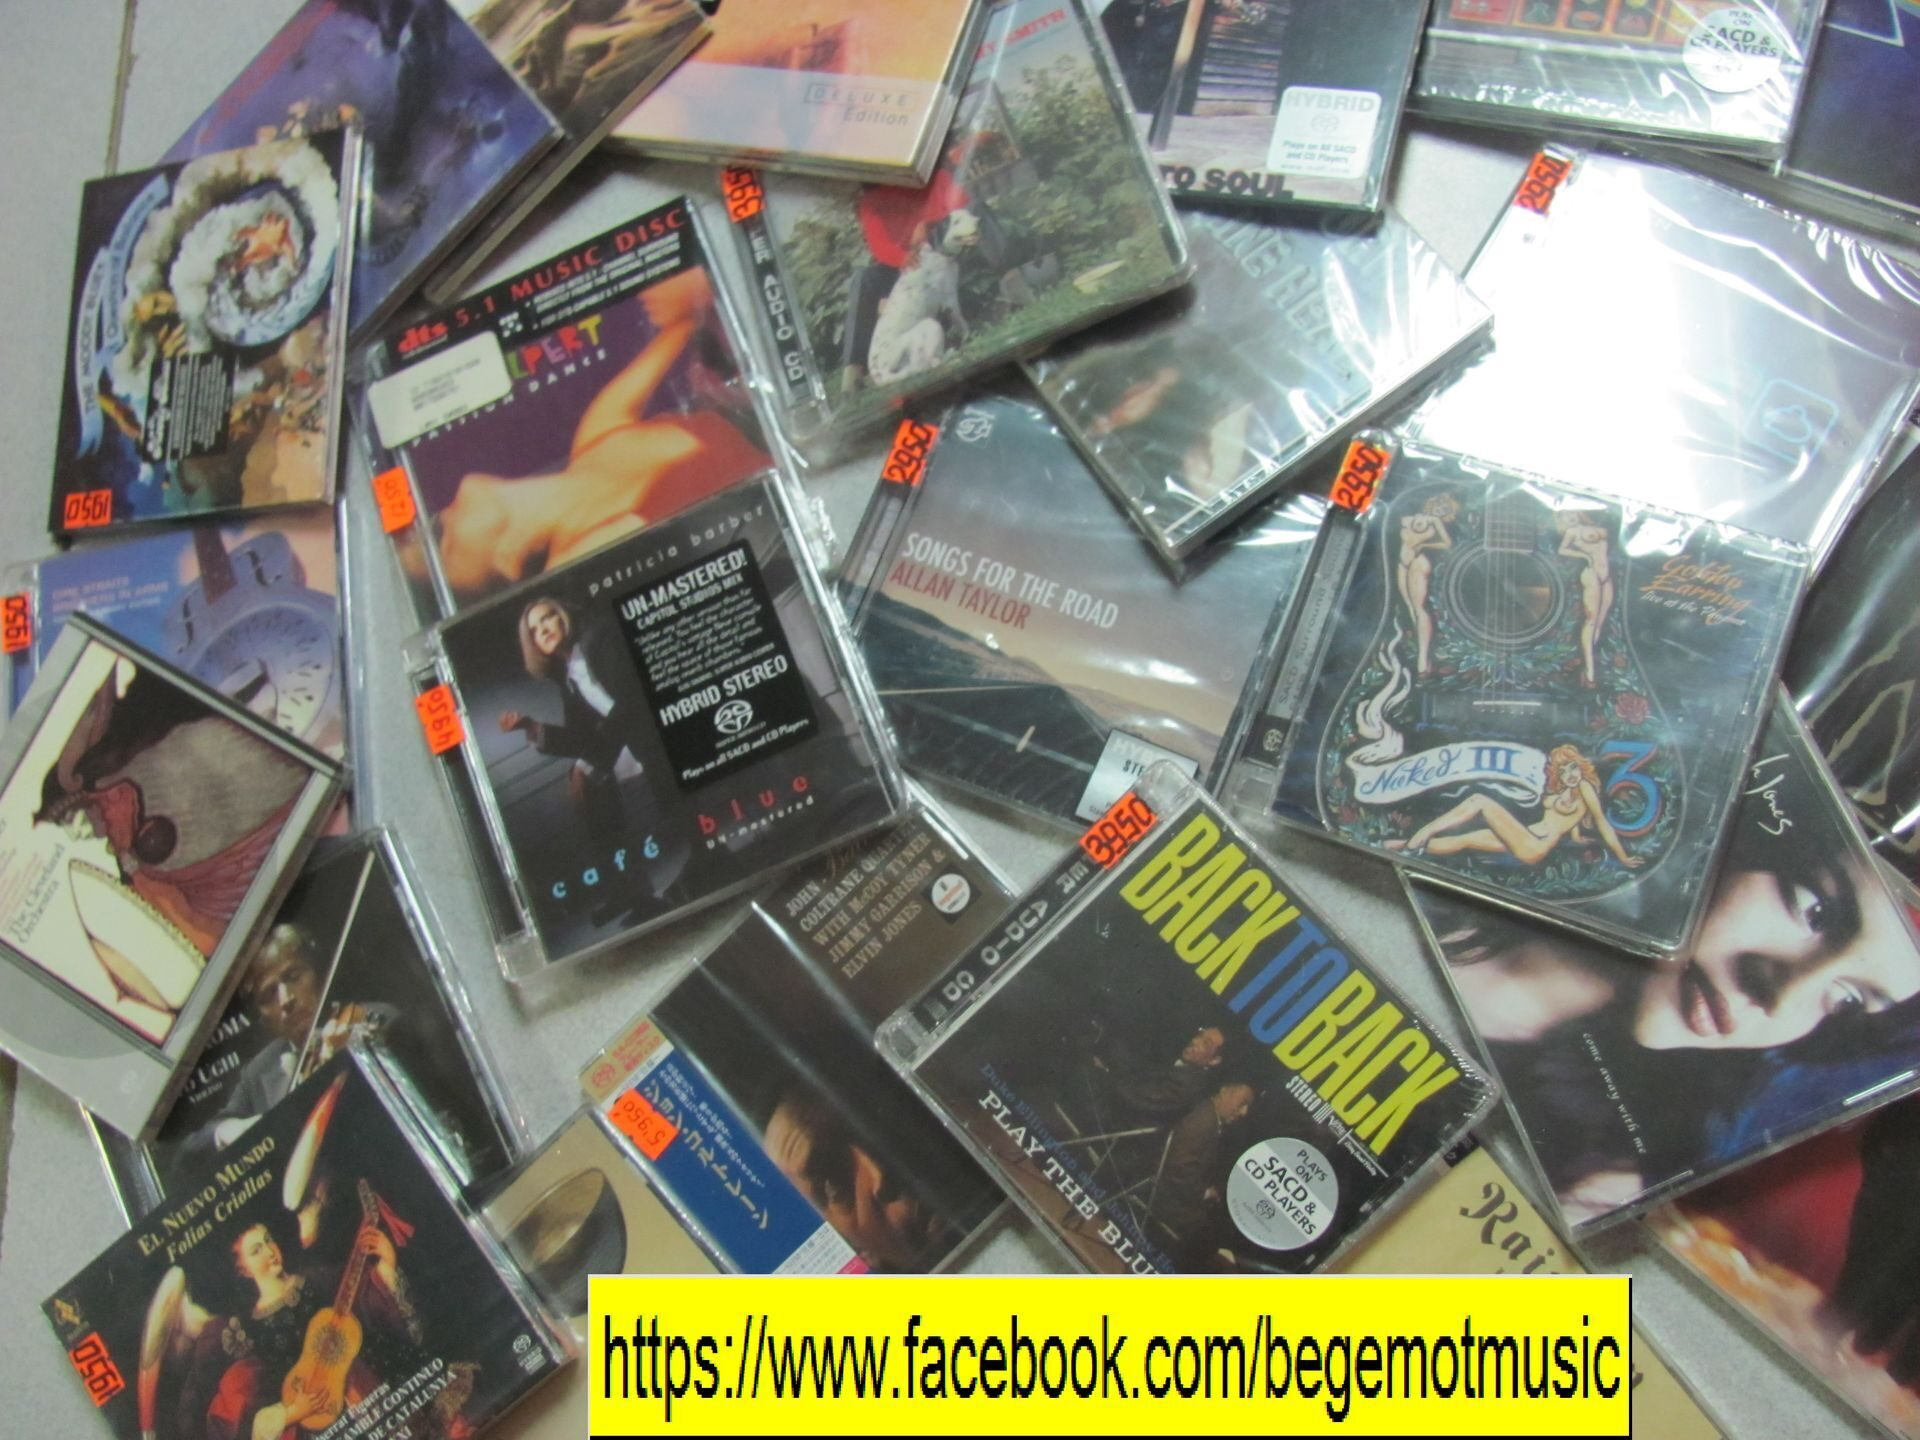 super audio cd stock - facebook.com begemotmusic sacd hi-fi hi-end винил compact disc japan